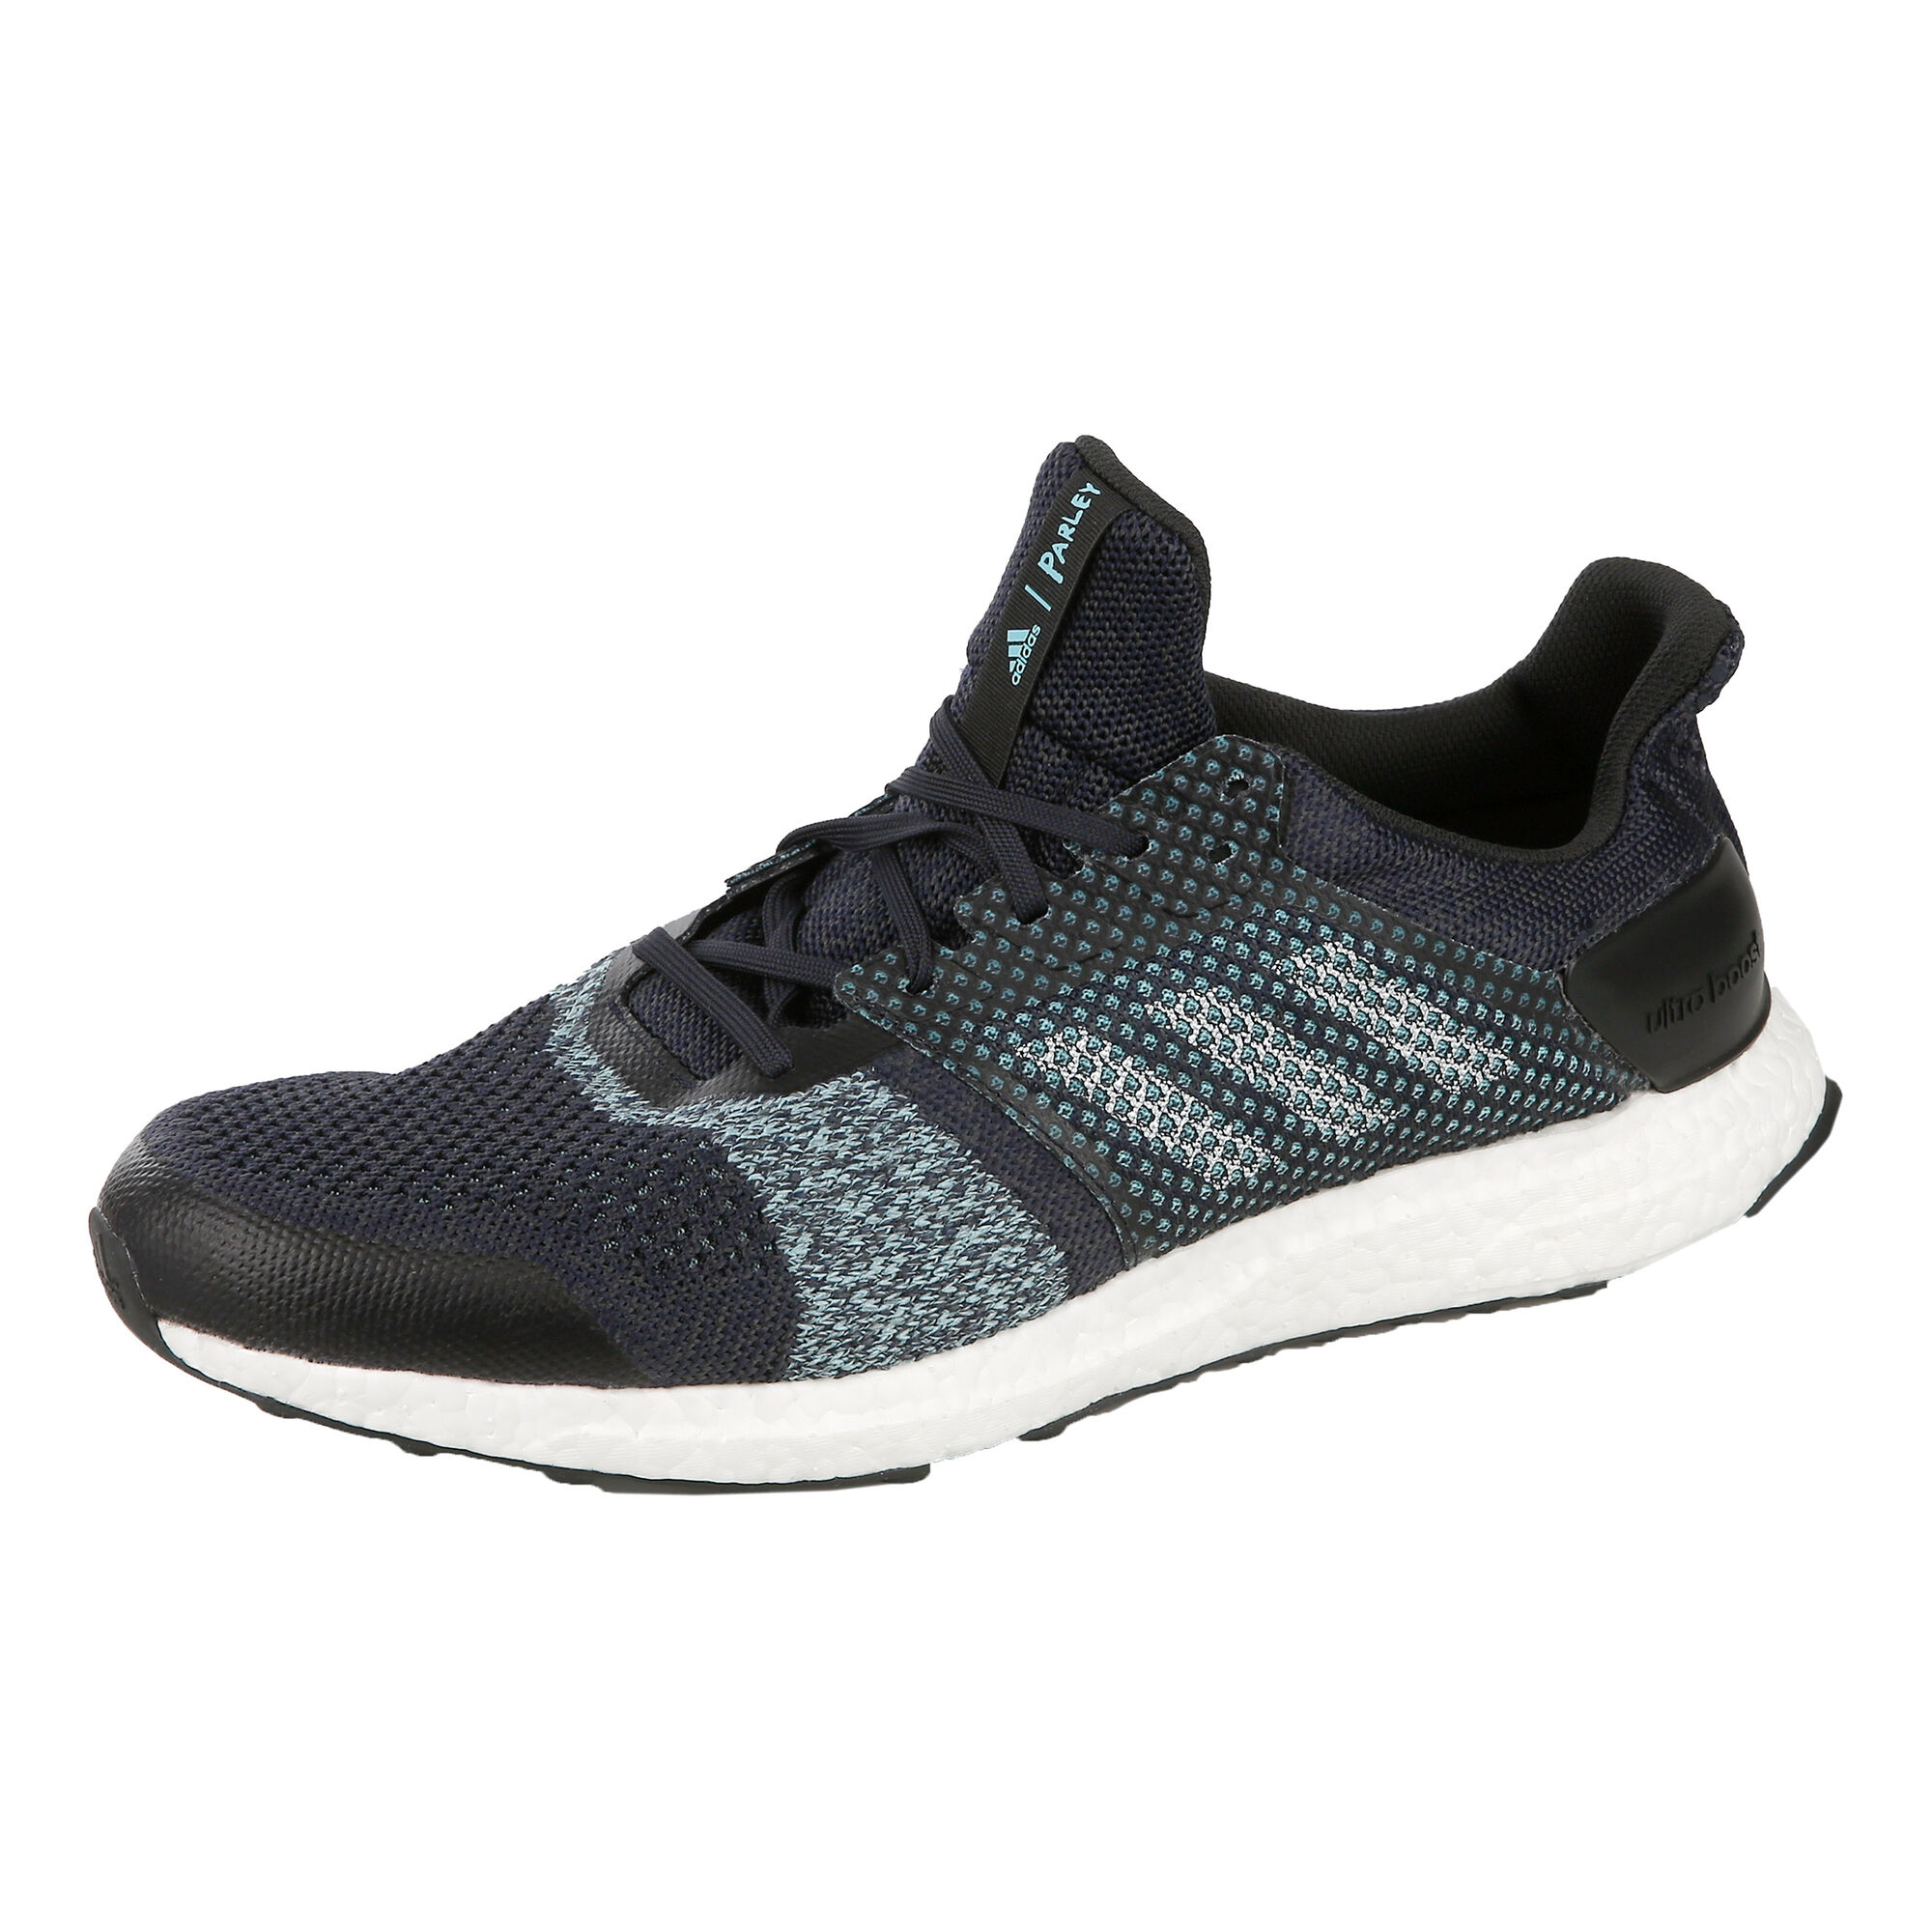 7c82e0671 buy adidas Ultra Boost ST Parley Stability Running Shoe Men - Dark ...